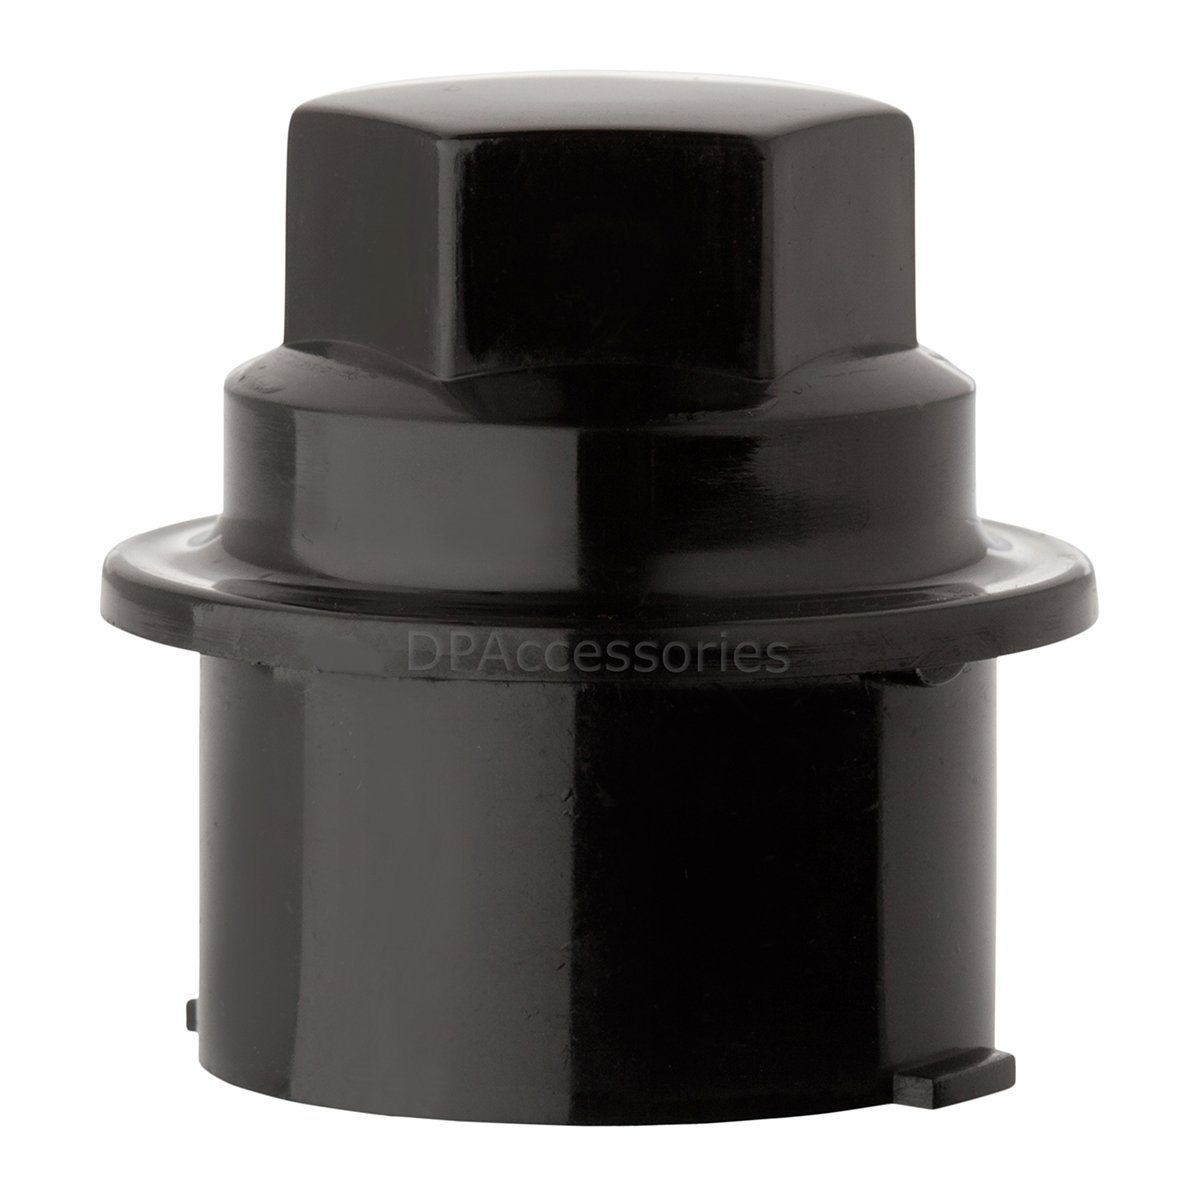 DPAccessories CC-3B-P-OBK05100 100 New Black Plastic Wheel Lug Nut Caps - Replaces GM 9593028/9593228 Wheel Lug Nut Cap